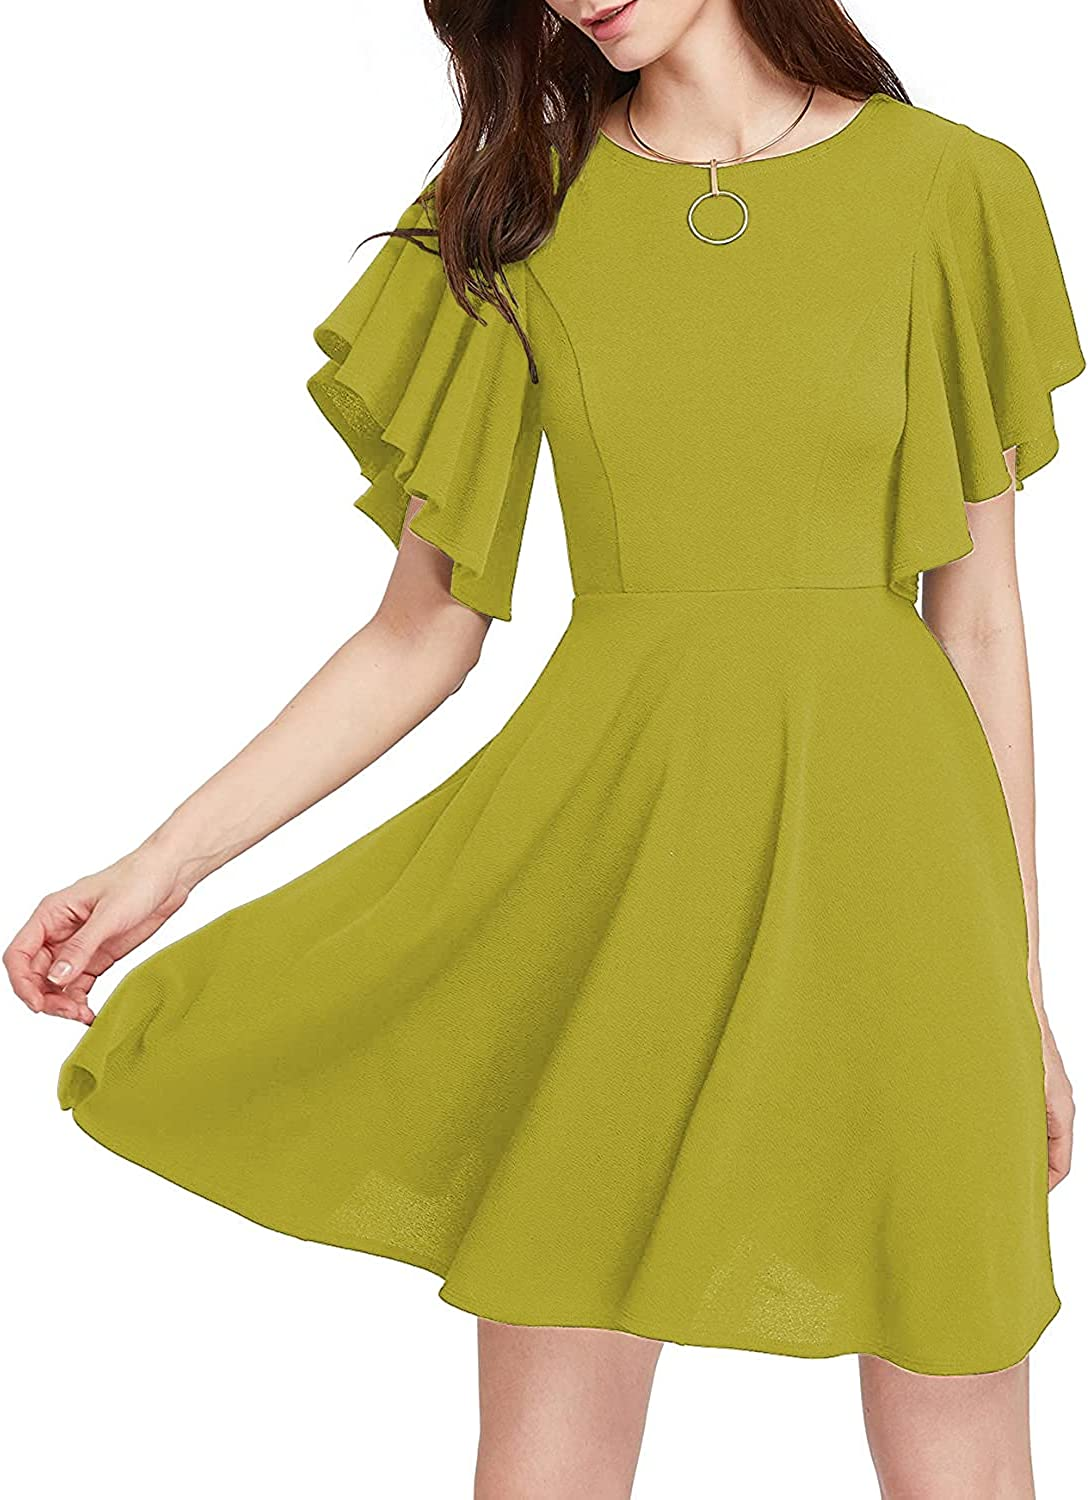 HongyuAmy Women's Casual A Line Swing Flared Flutter Sleeve Cocktail Party Dress